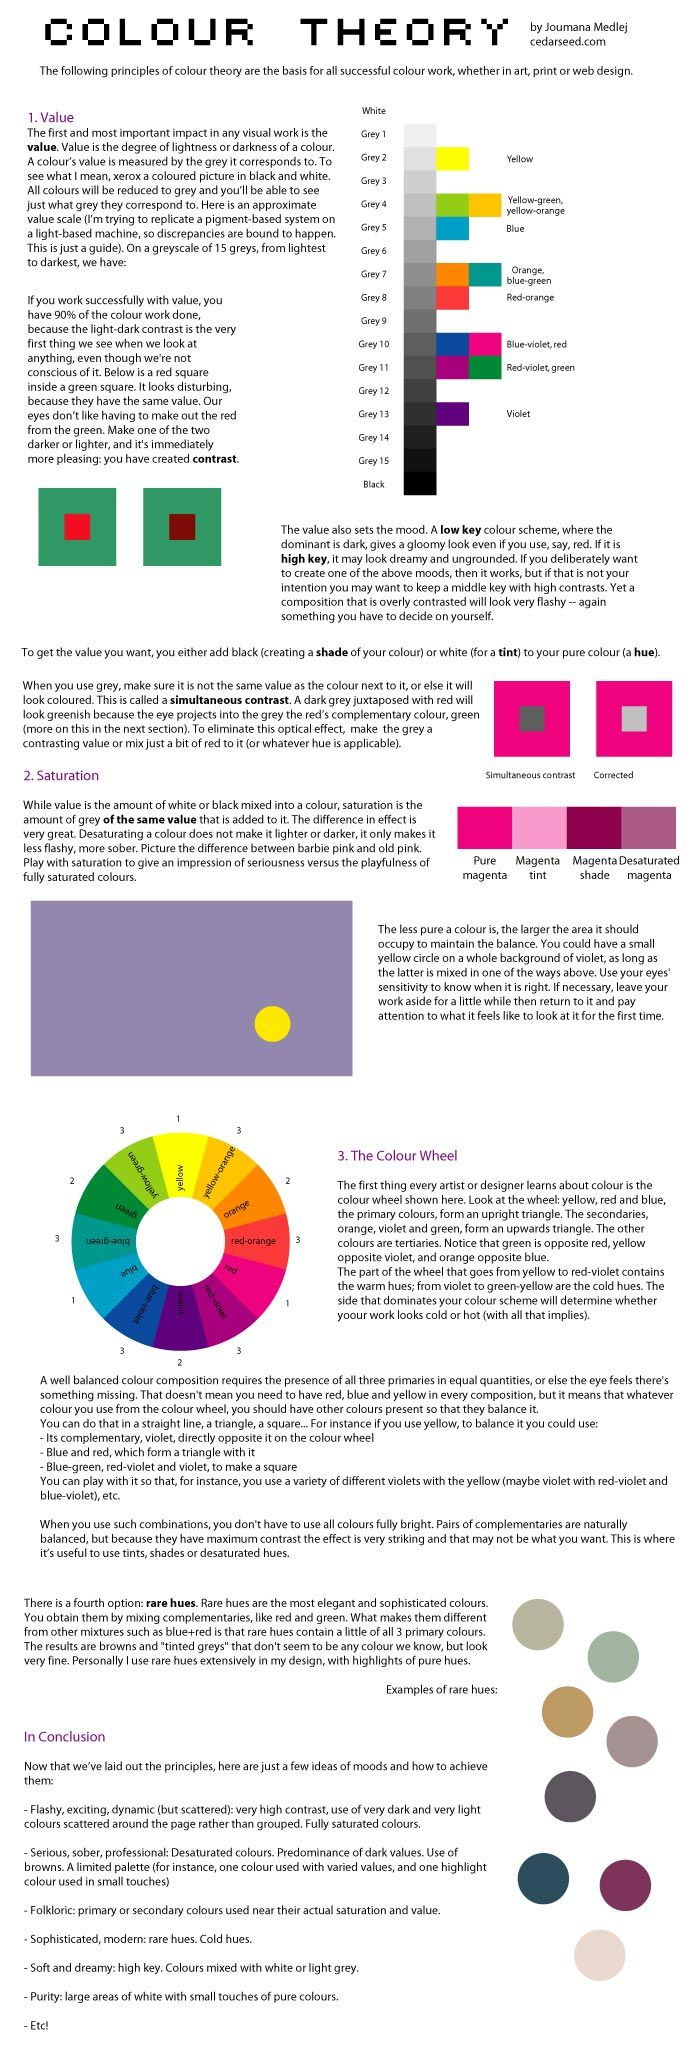 Colour Theory - principles of colour theory are the basis for all successful colour work, whether in art, print or web design.